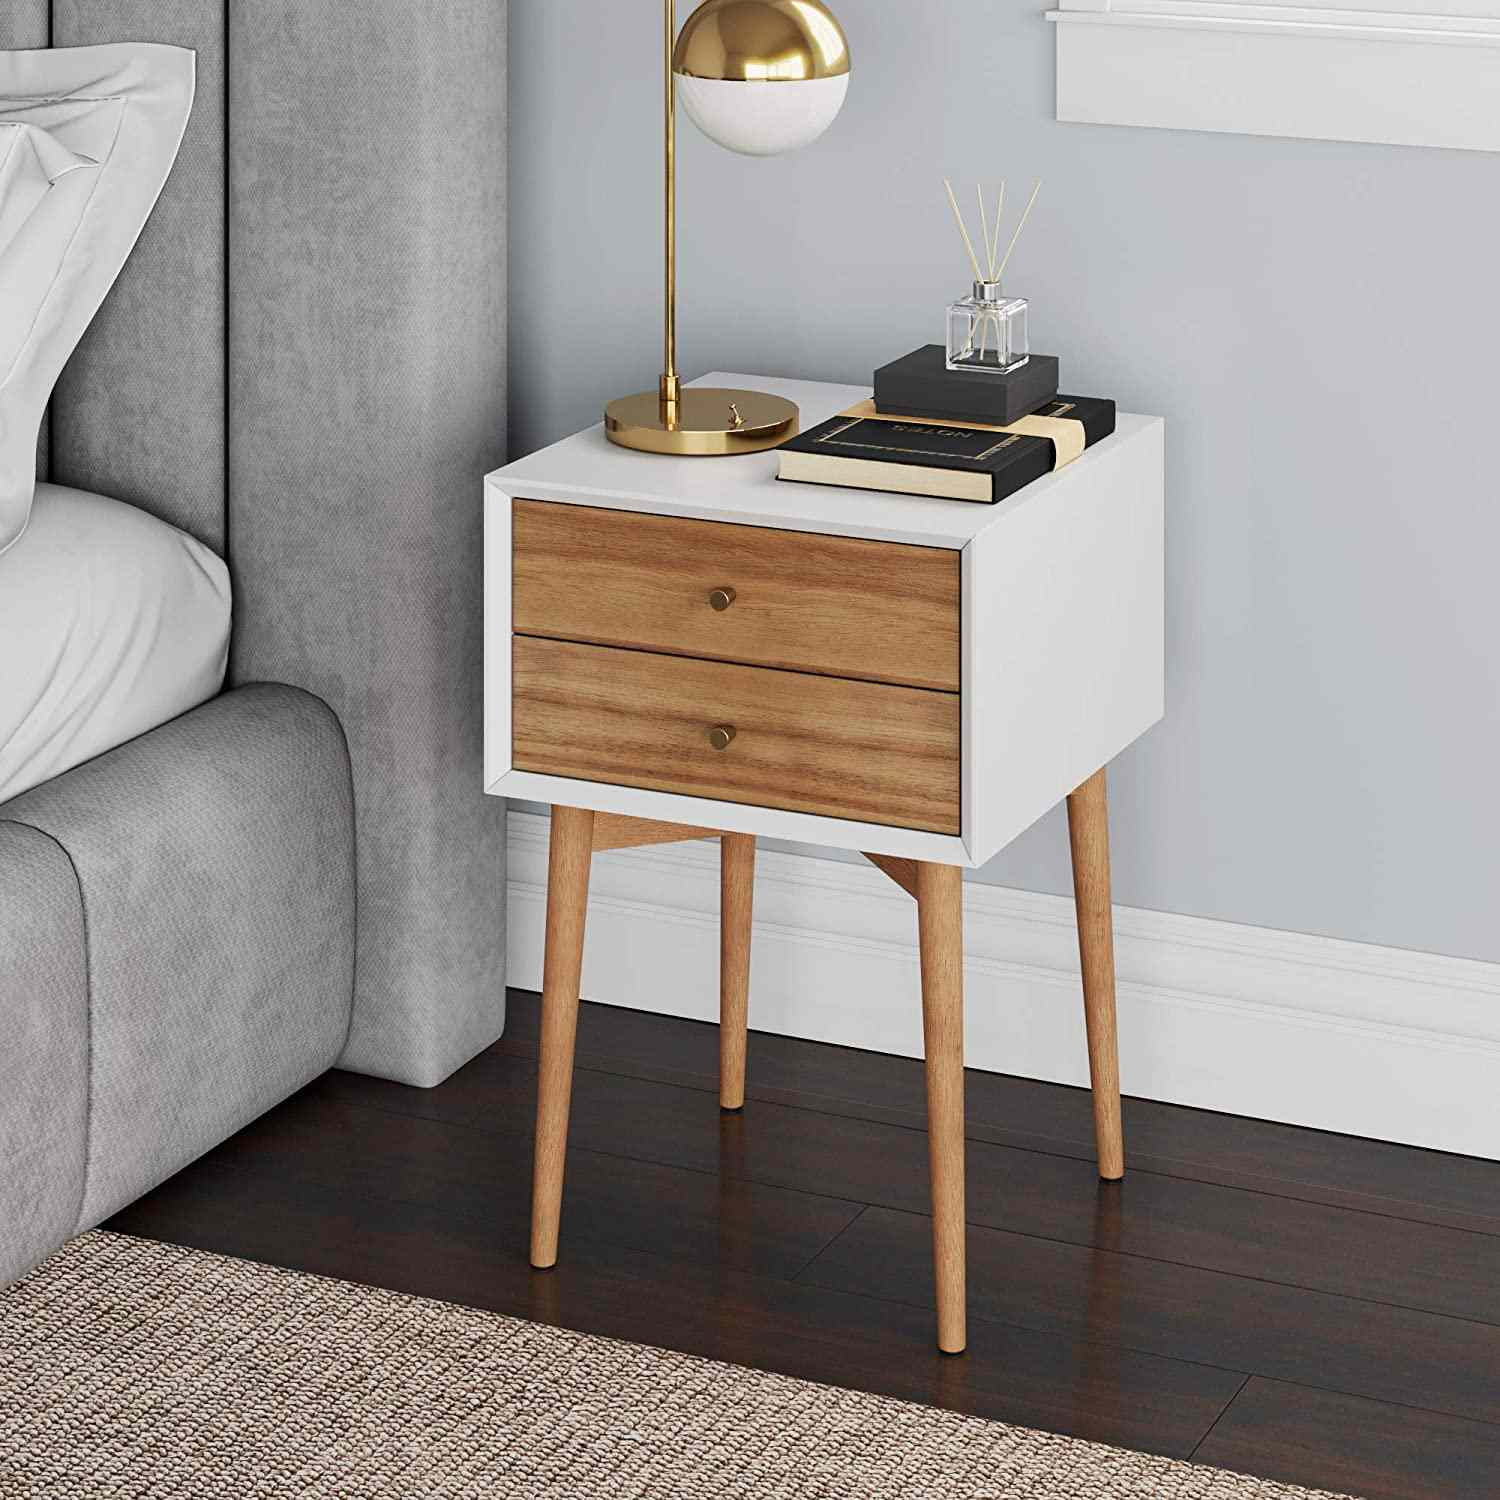 The 10 Best Side Tables Of 2021